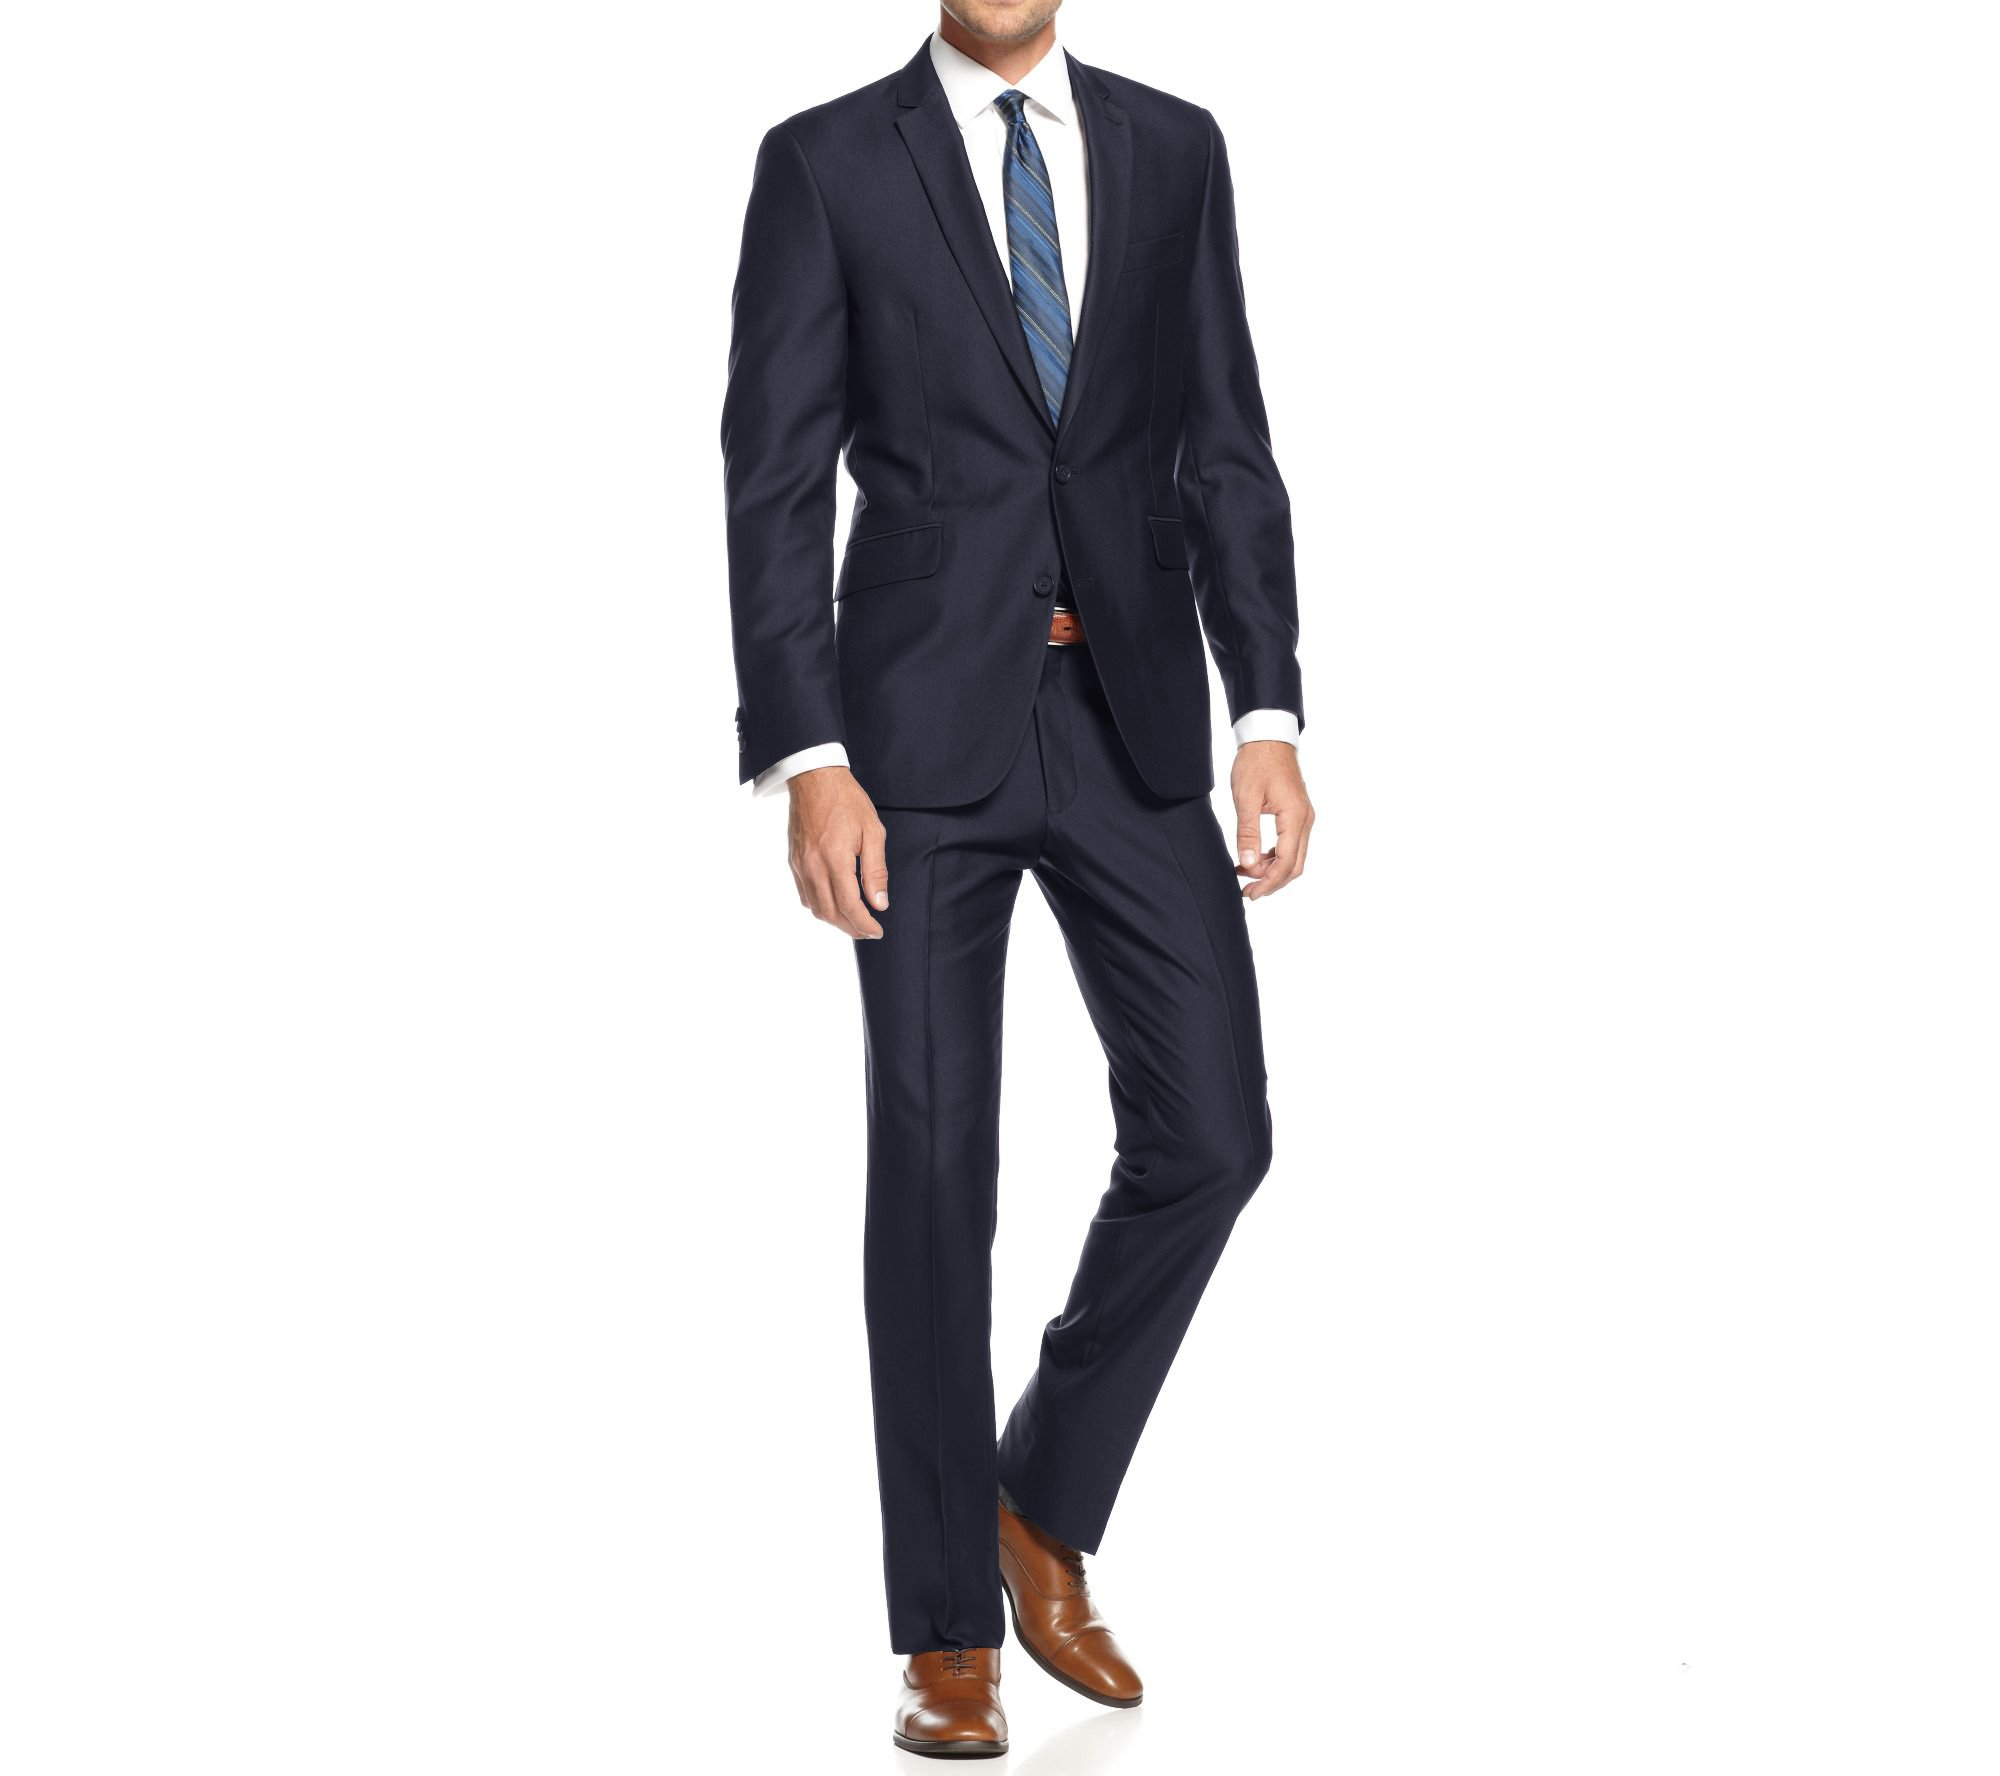 Braveman Mens Slim Fit Single Breasted 2 Piece Suit, Navy, Size 40L/34W